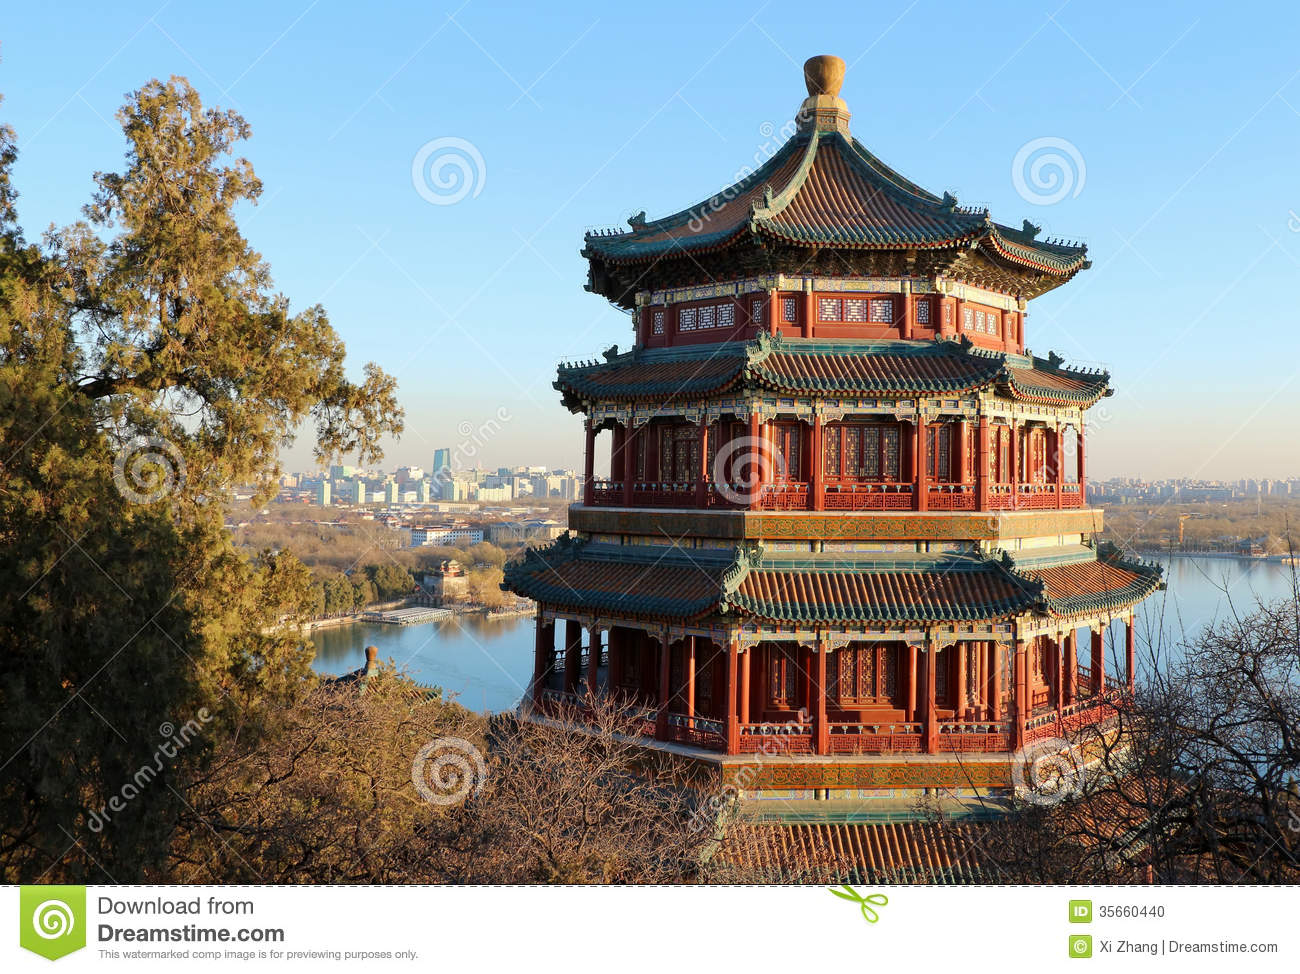 The Summer Palace is the most famous emperor garden in china.